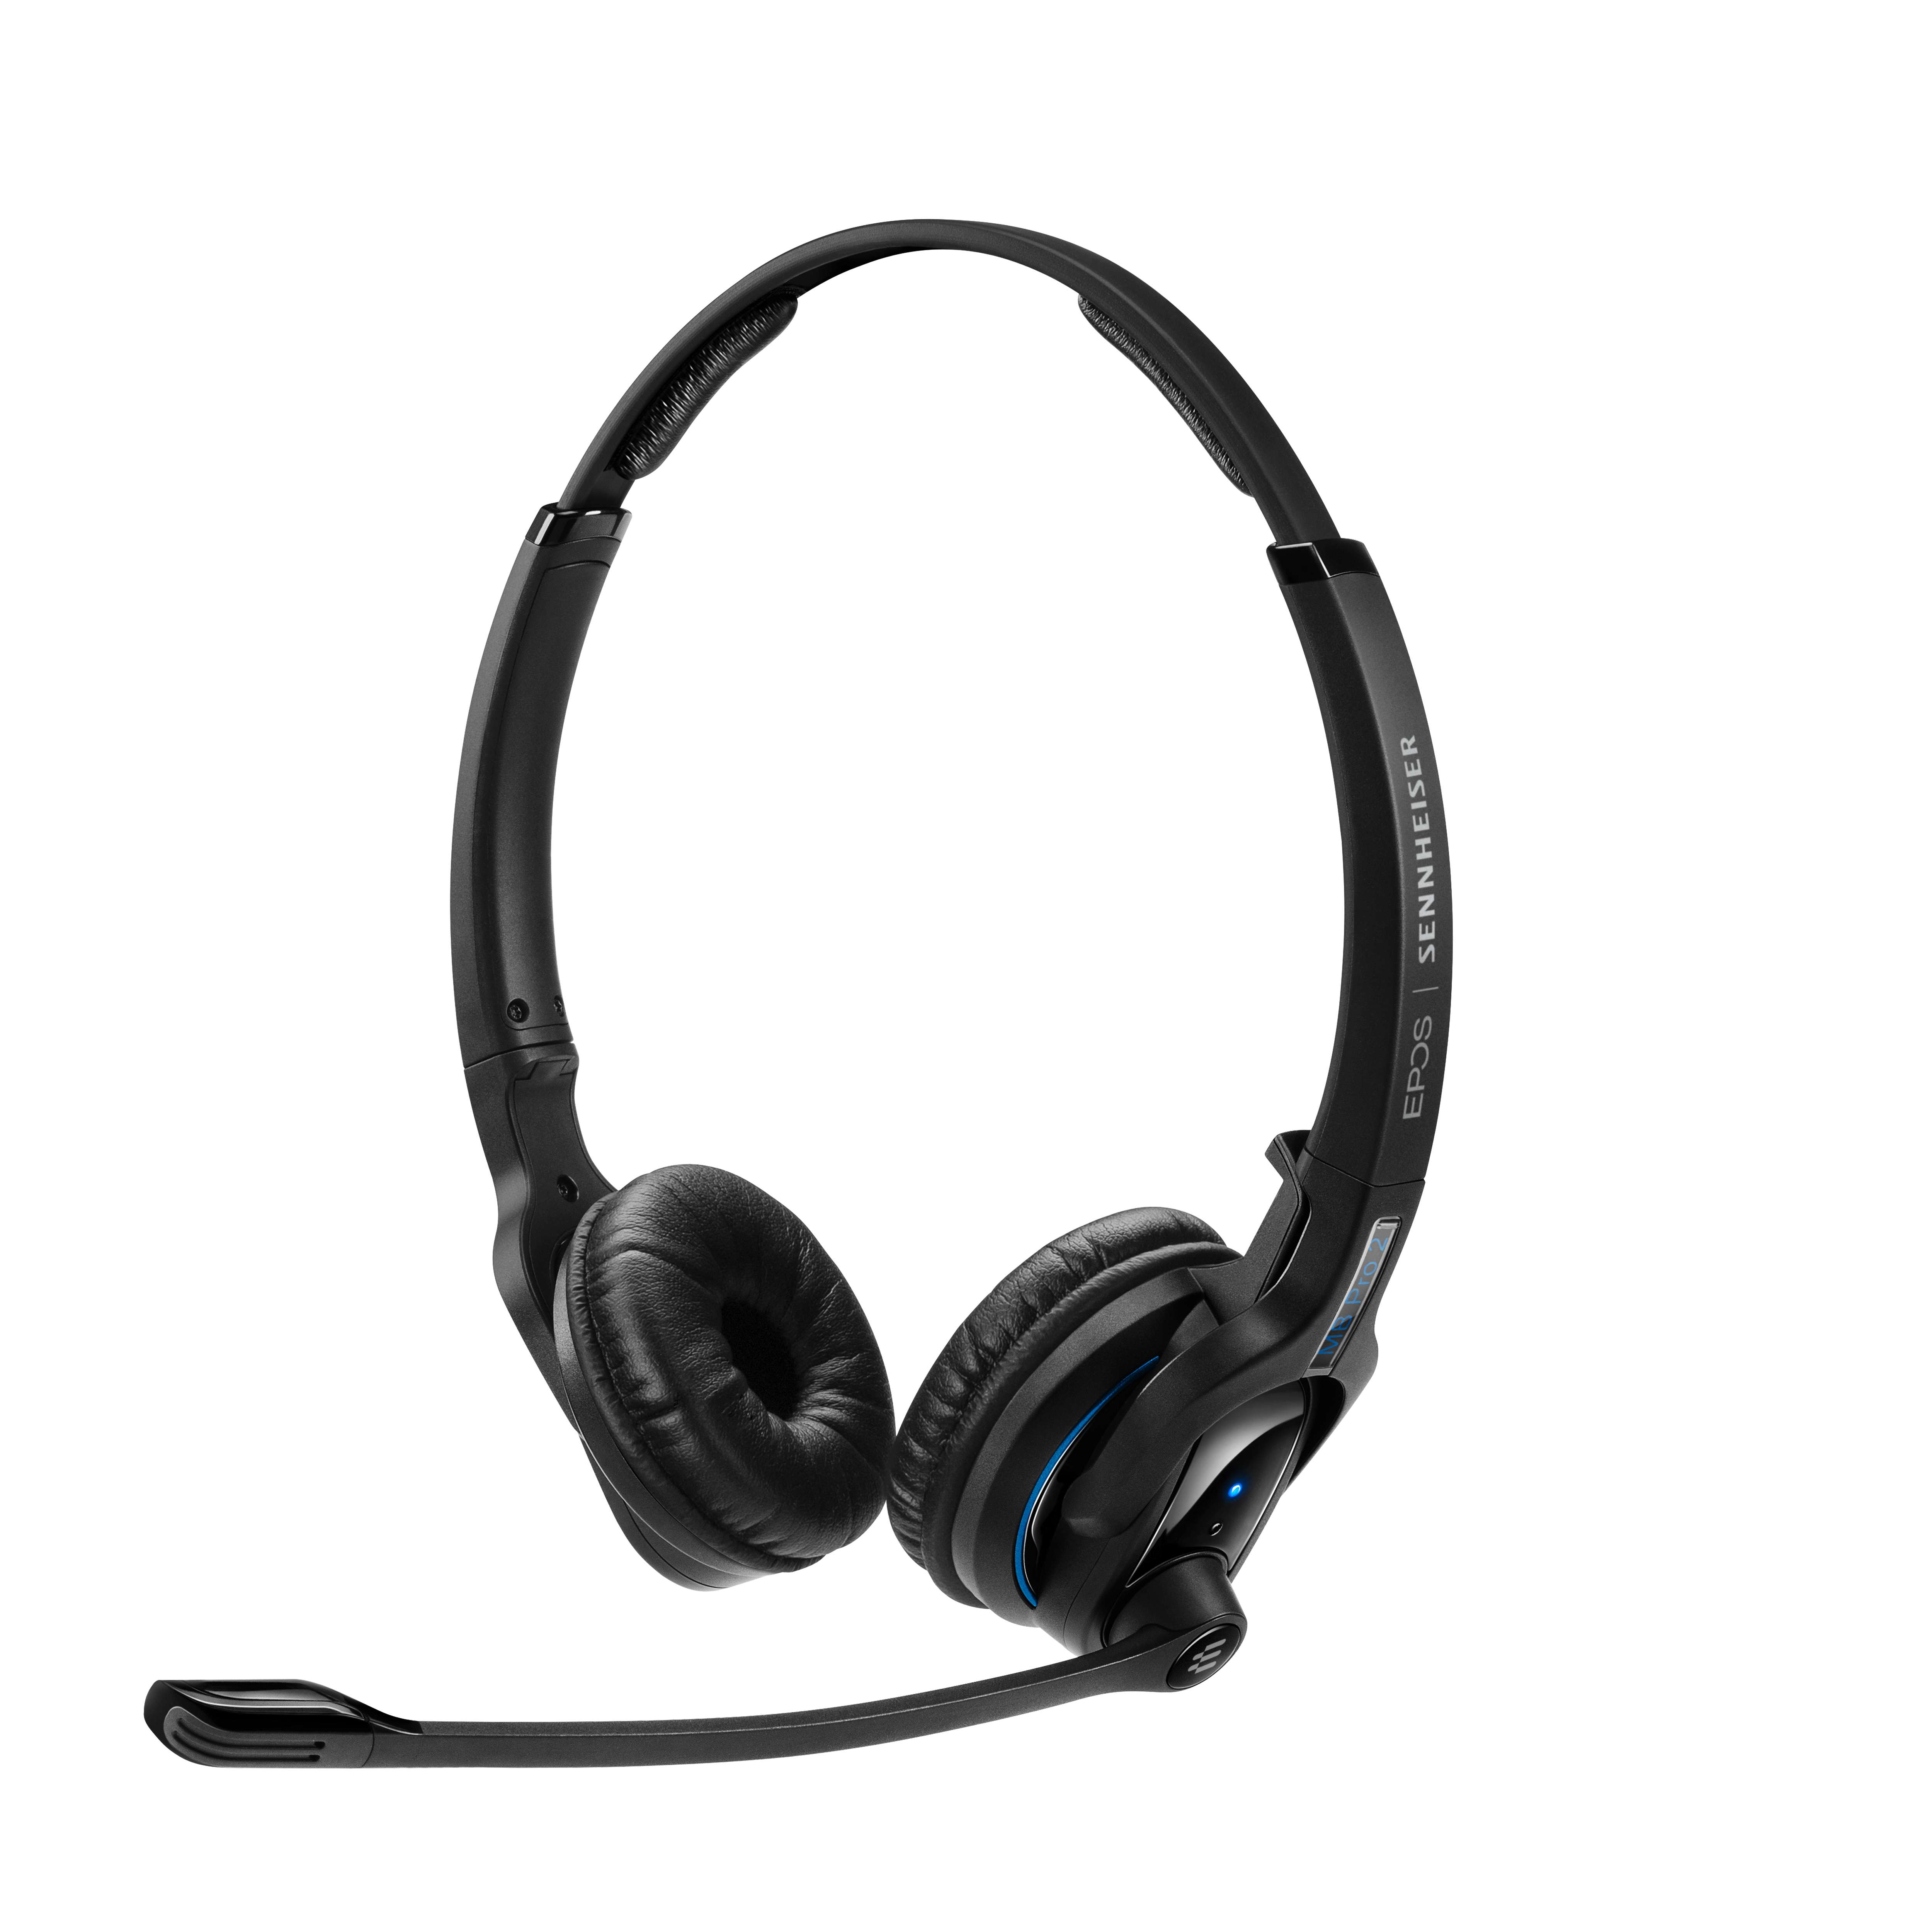 EPOS | Sennheiser IMPACT MB Pro2 UC ML Bluetooth 4.0 Headset with Desk USB Stand, Binaural, Noise Cancelling Mic, Upto 15 Hours Talk, Teams Certified